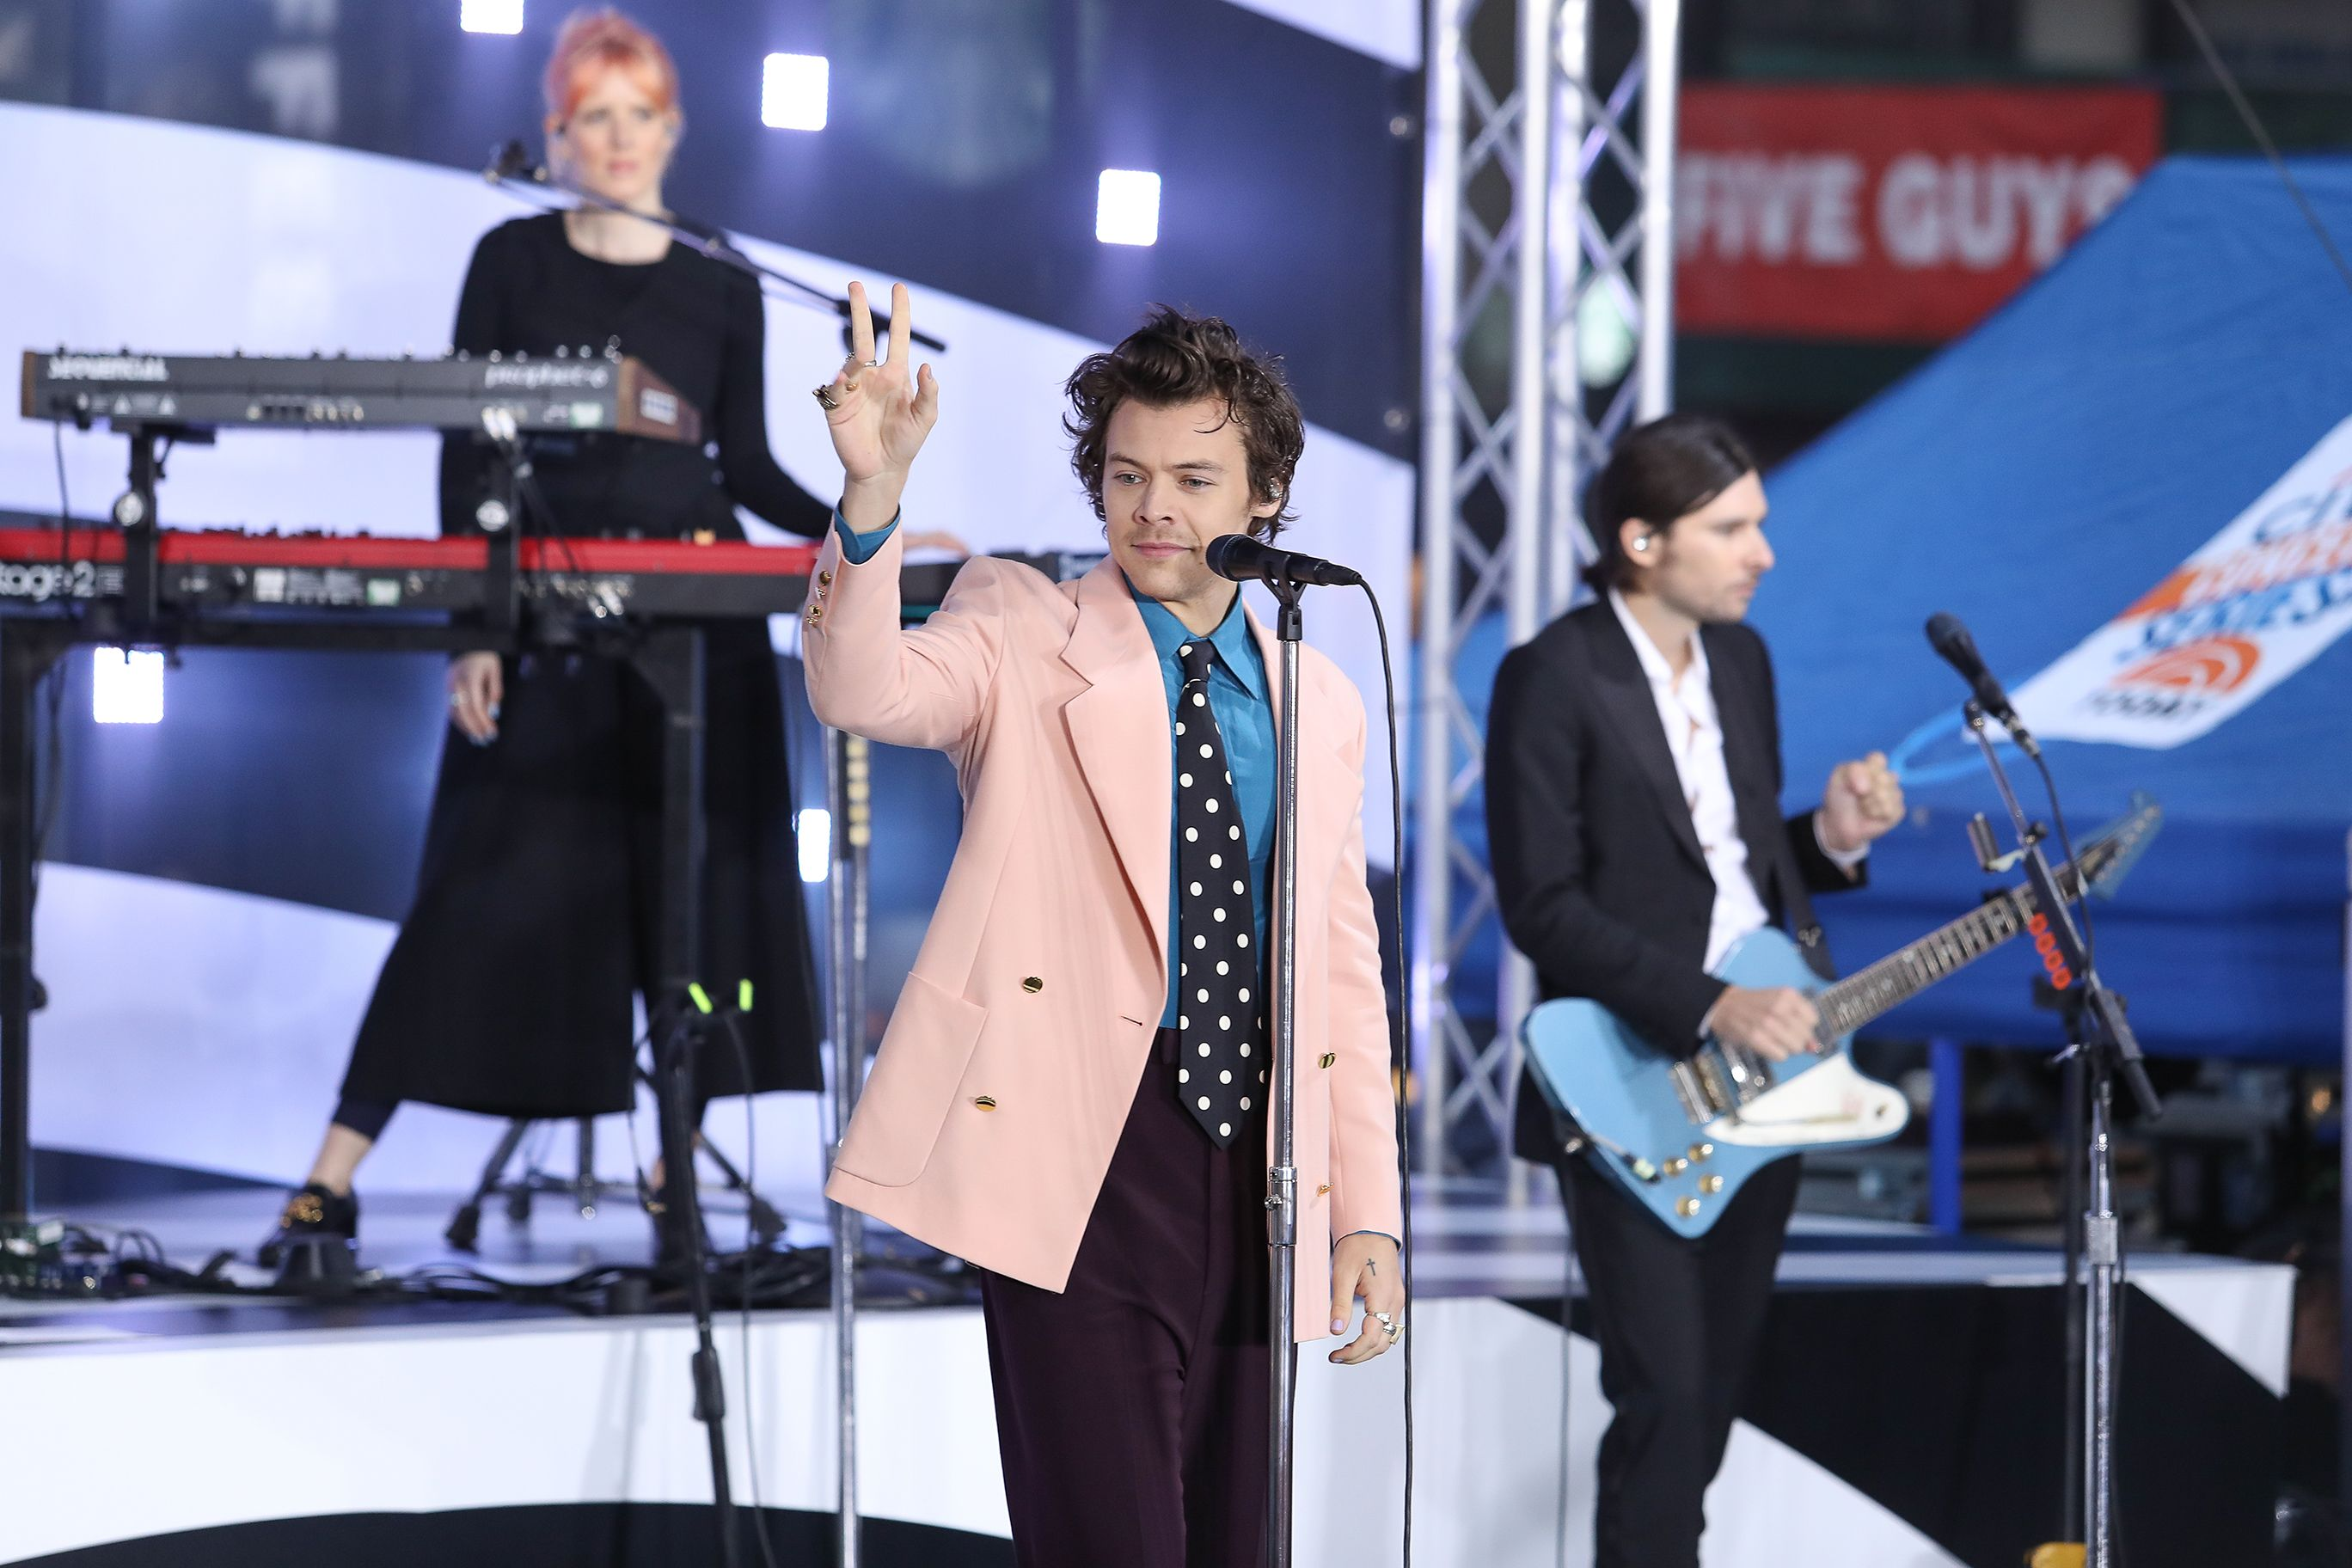 Harry Styles Is Dressed Like The Man Your Grandma Secretly Obsessed Over